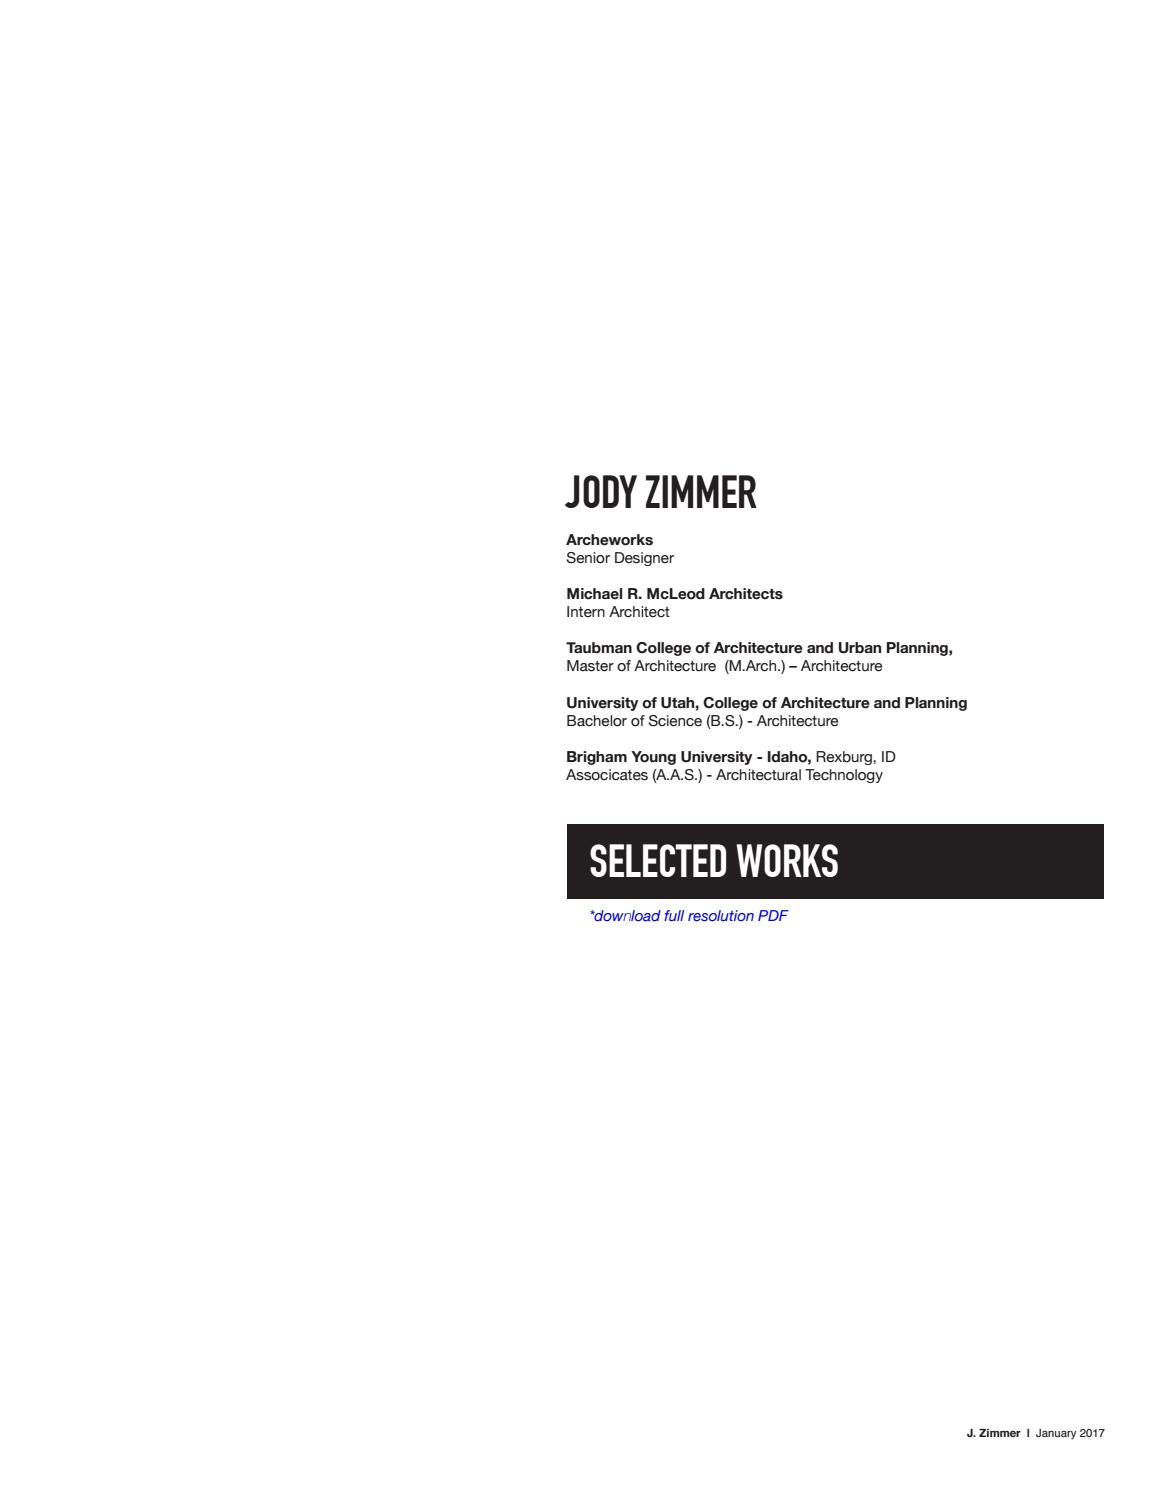 Jody Zimmer | Selected Works by ARCHEWORKS - issuu